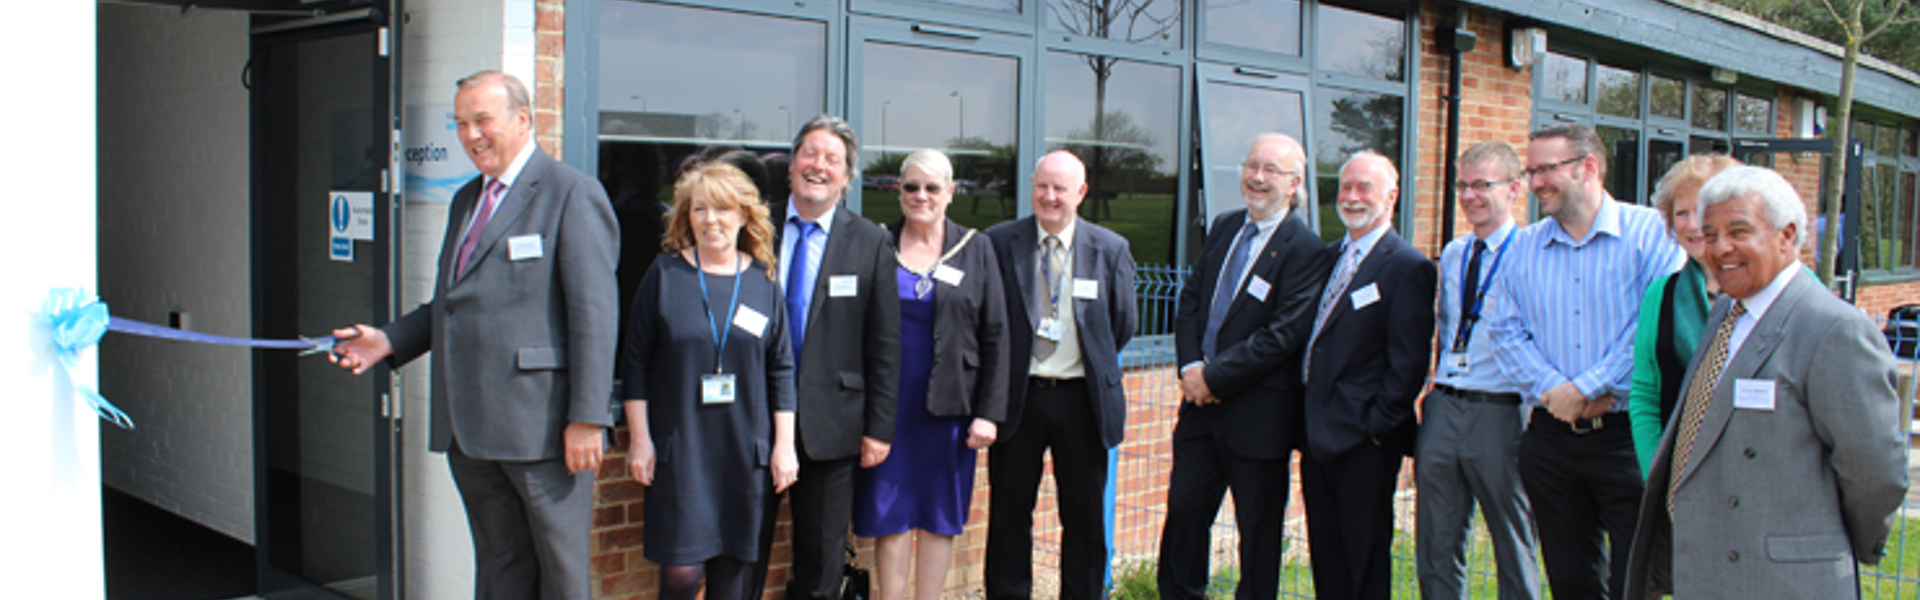 North East Autism Society celebrates the Official Opening of Sir Peter Vardy Enterprise Centre @ Thornbeck College